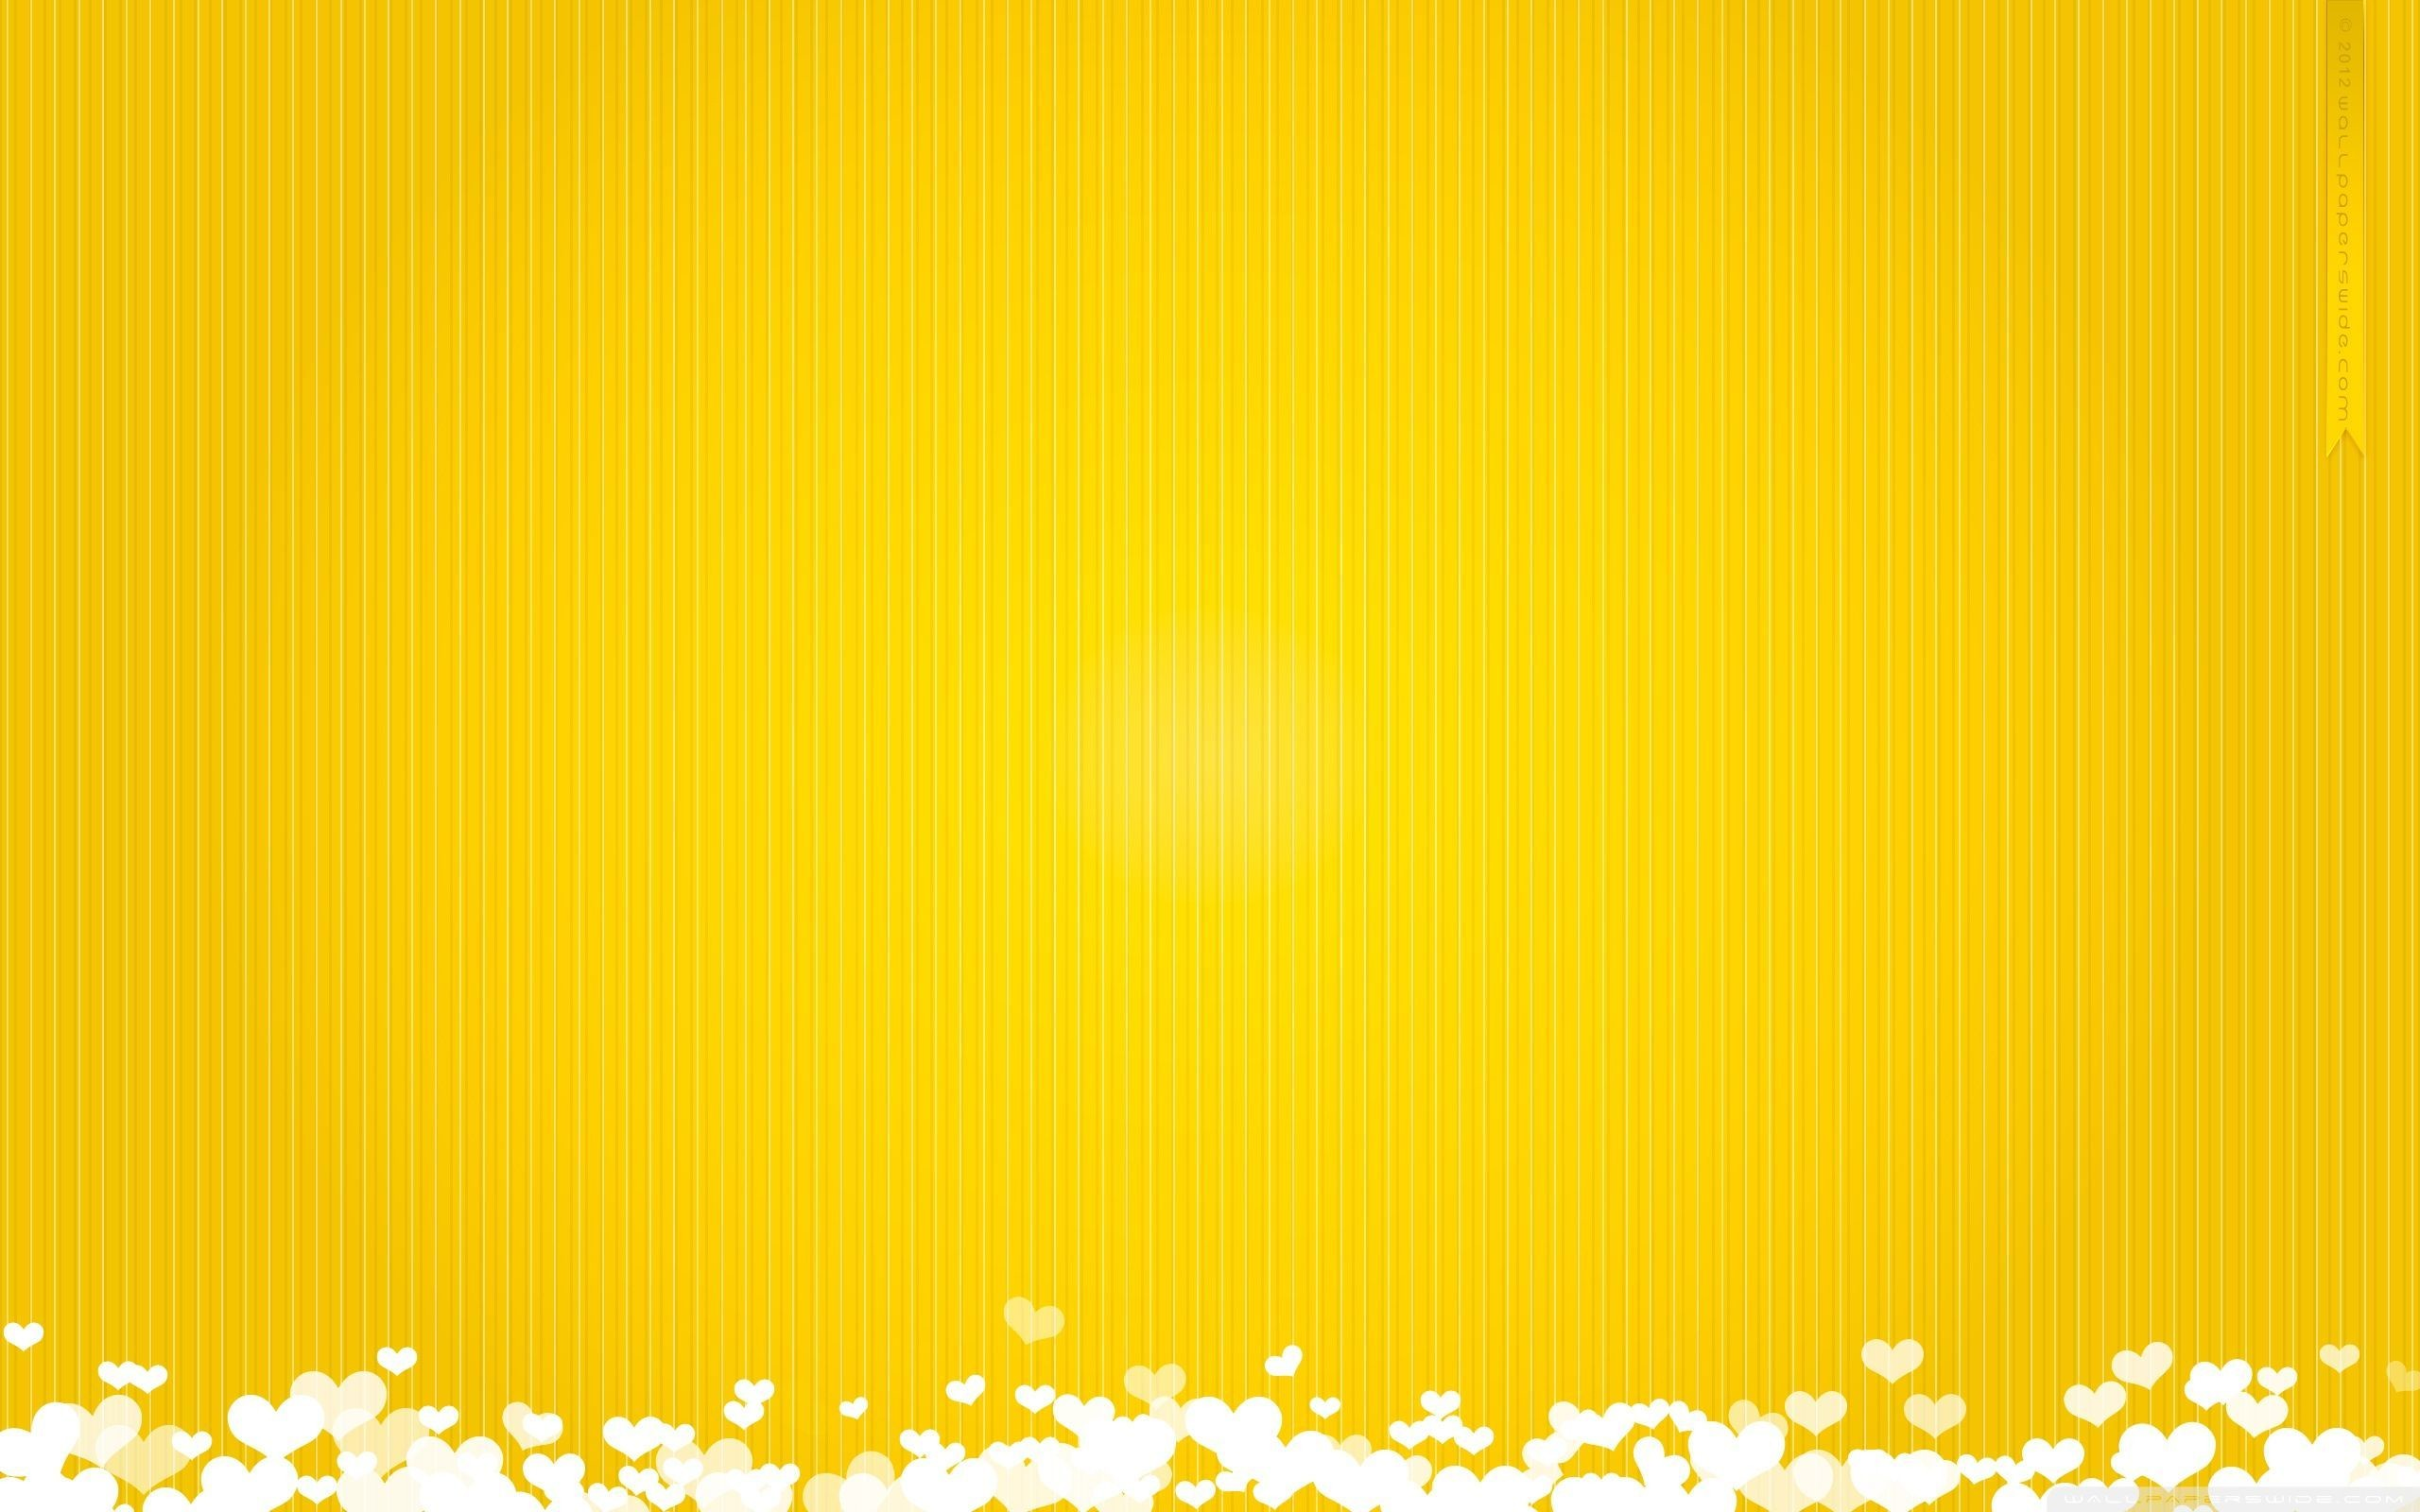 Bright Yellow Backgrounds (37+ images)